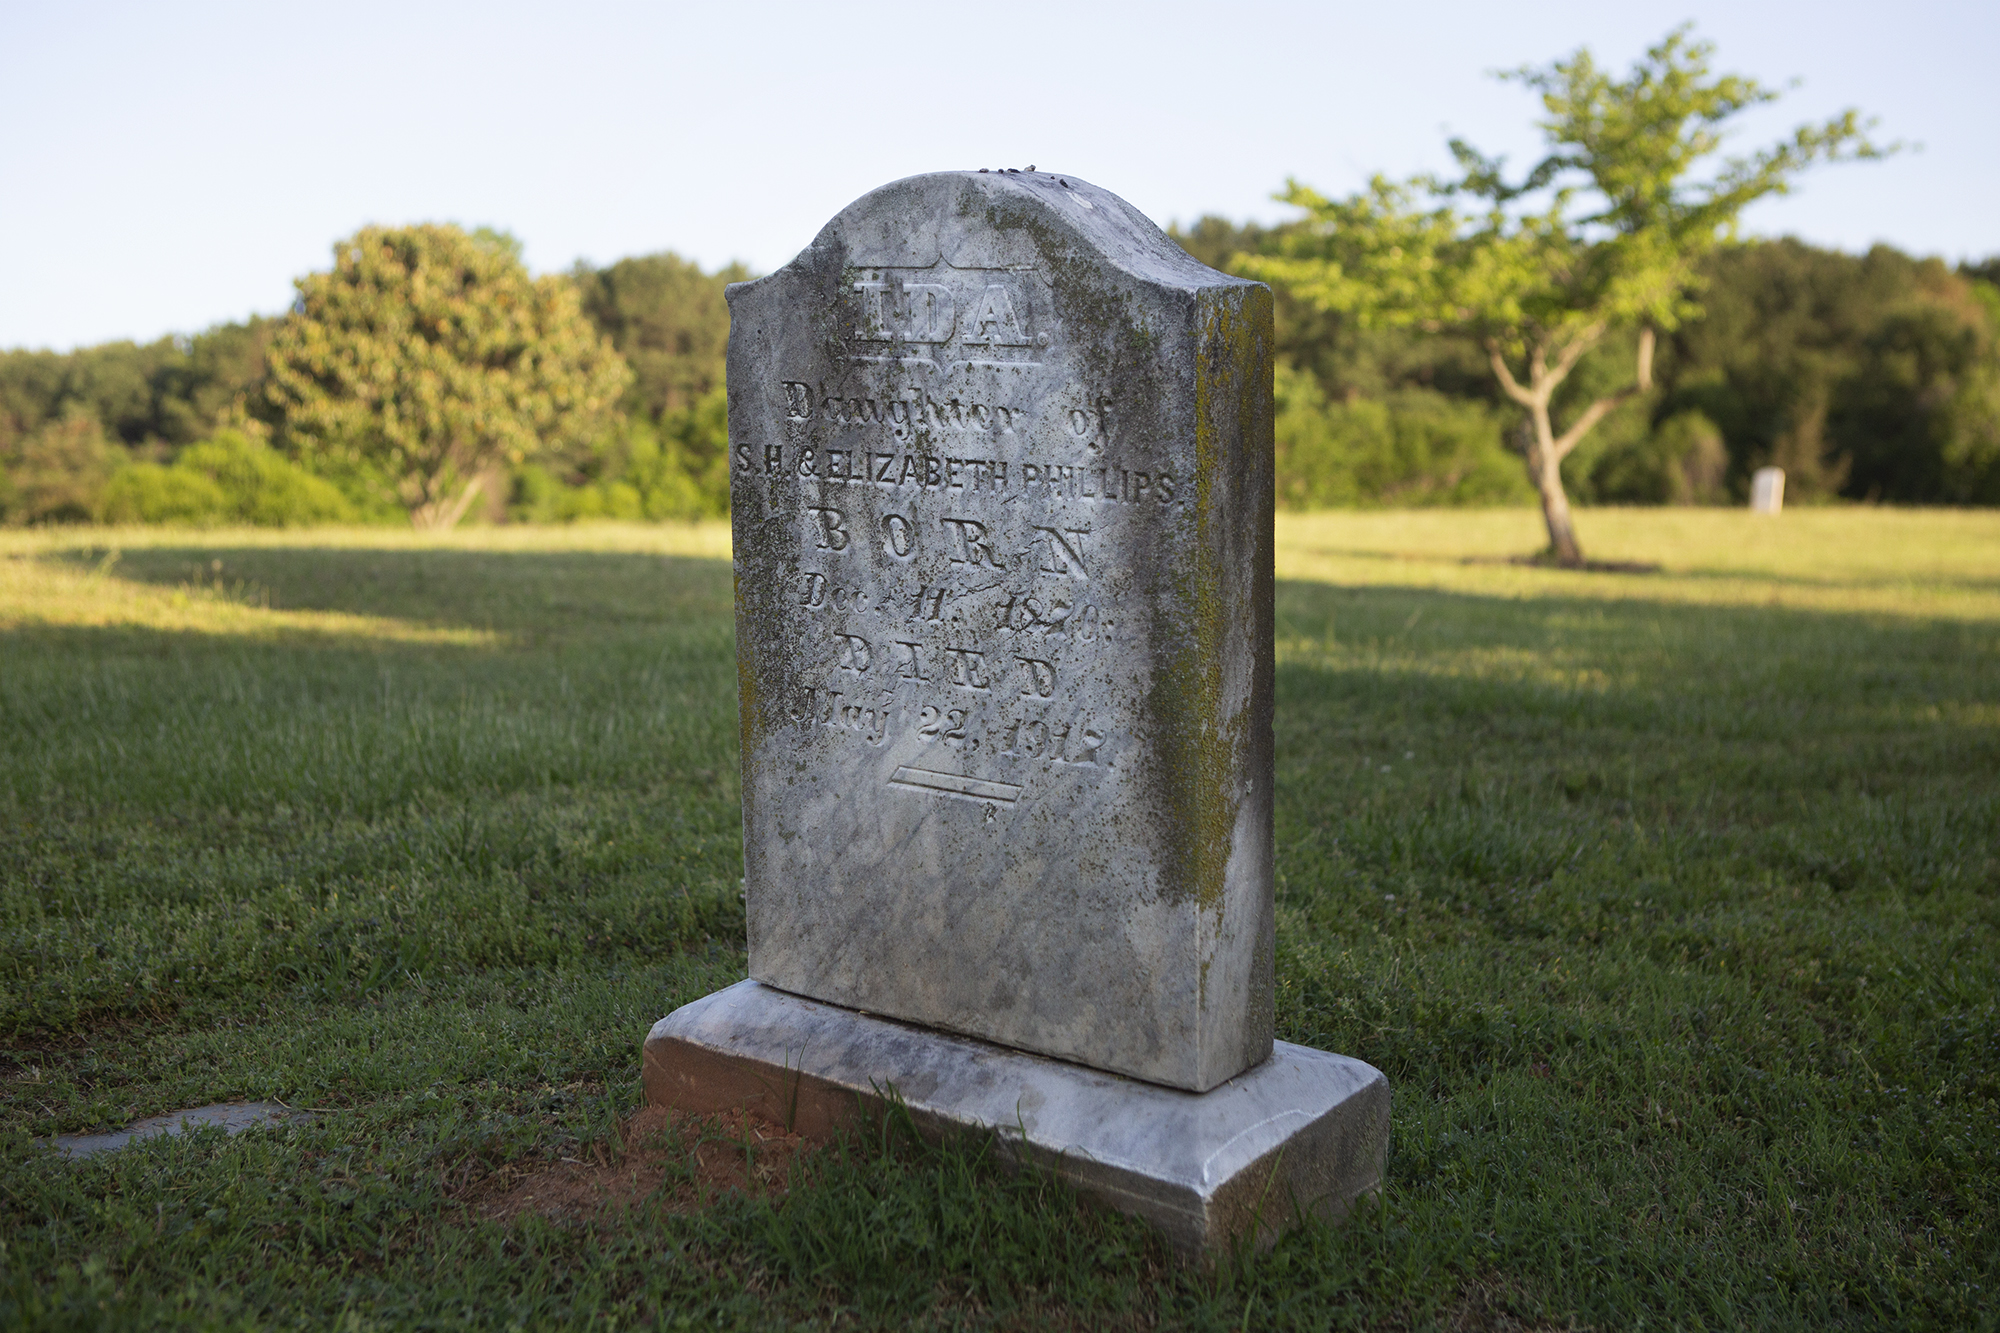 Detailed photo of a grave marker in the hospital cemetery.